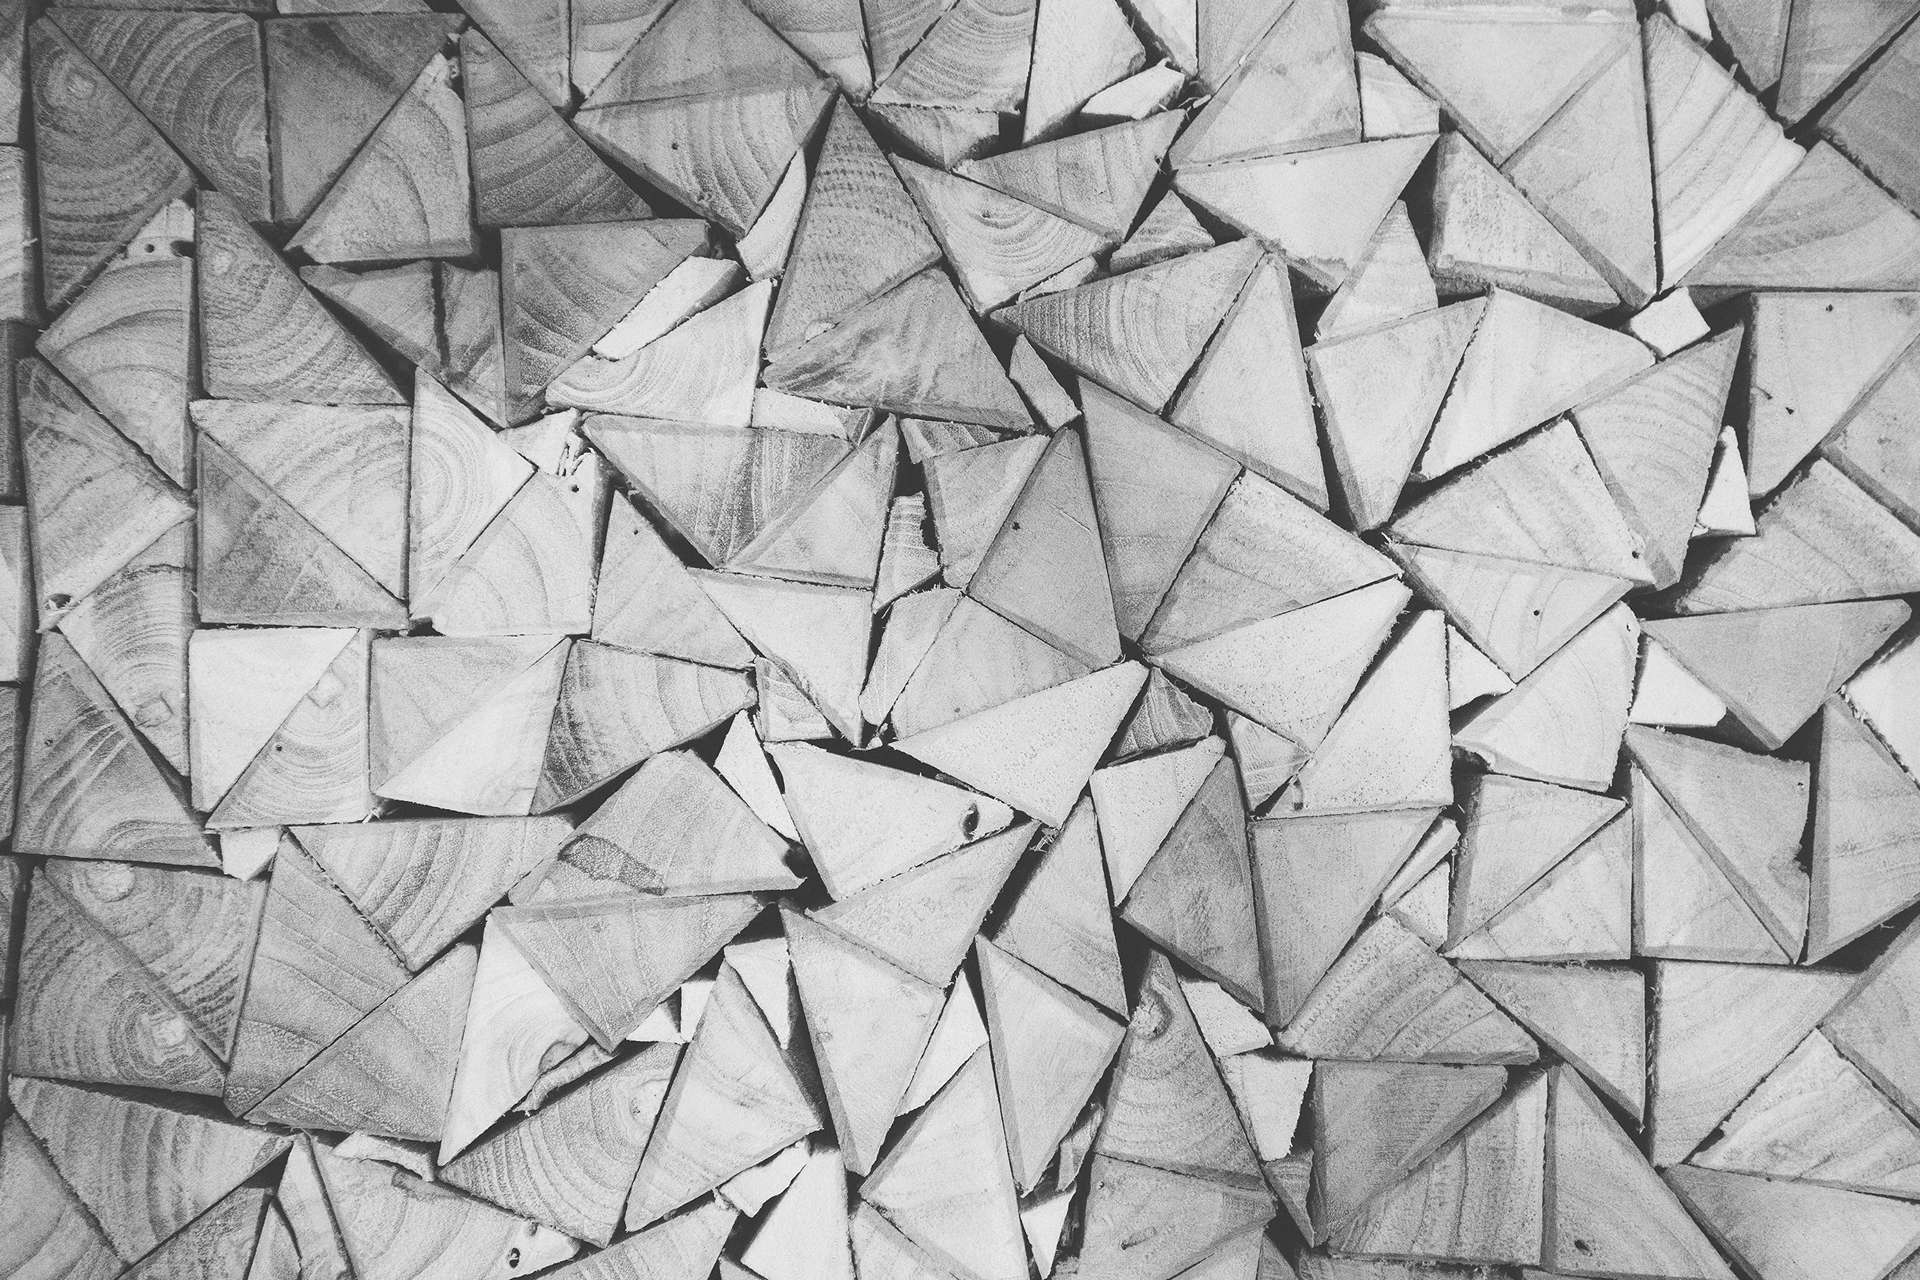 pattern-triangles-2988